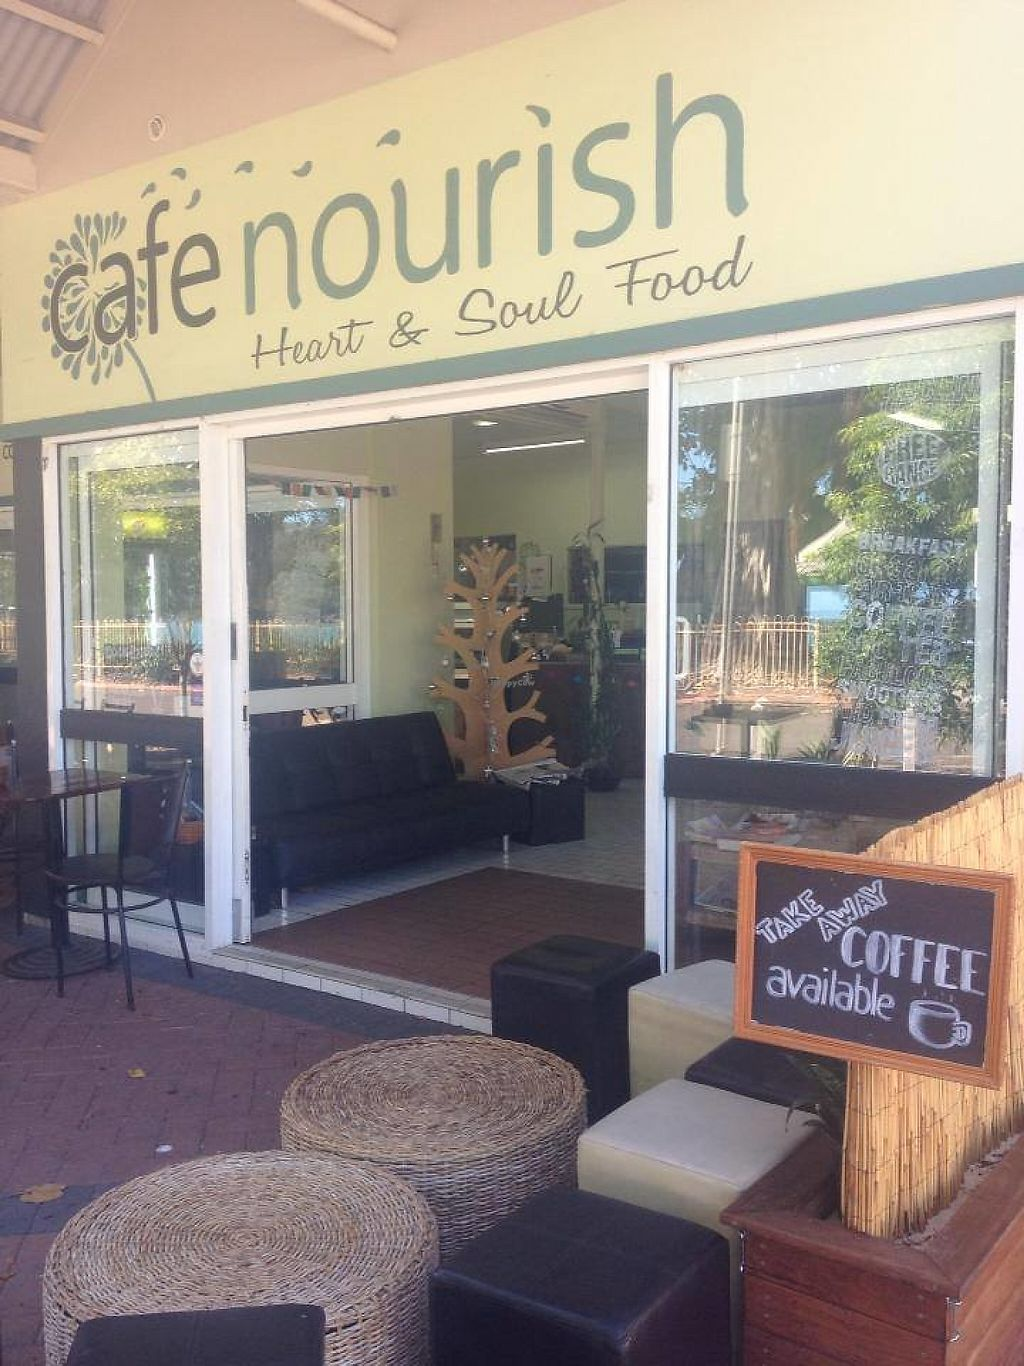 """Photo of Cafe Nourish Heart and Soul Food  by <a href=""""/members/profile/community5"""">community5</a> <br/>Cafe Nourish  <br/> May 2, 2017  - <a href='/contact/abuse/image/91447/254931'>Report</a>"""